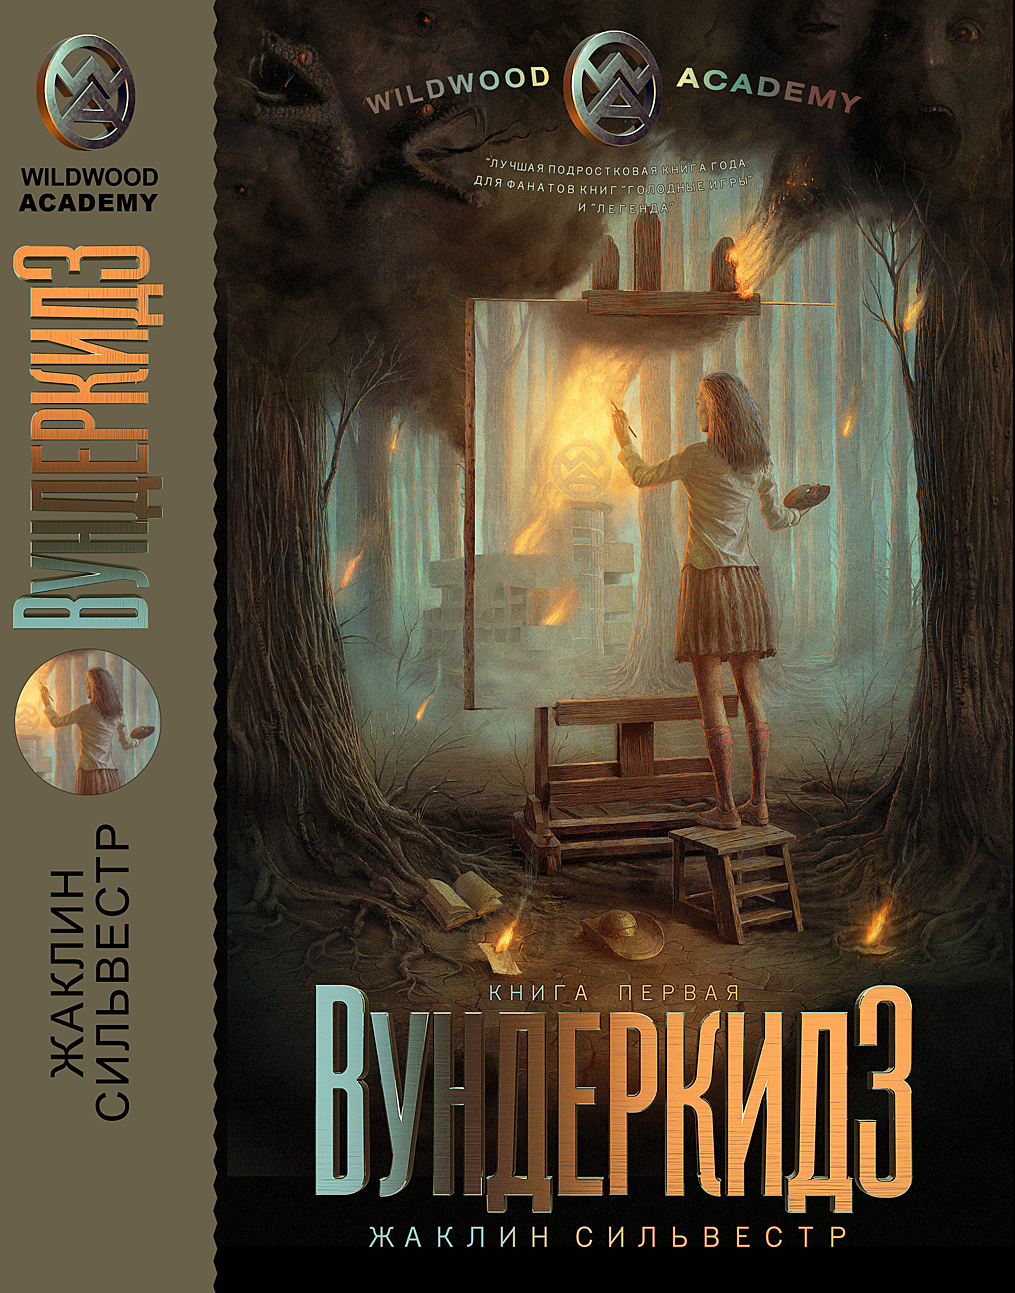 Russian cover finally revealed!!! Designed by artist Andrew Ferez.